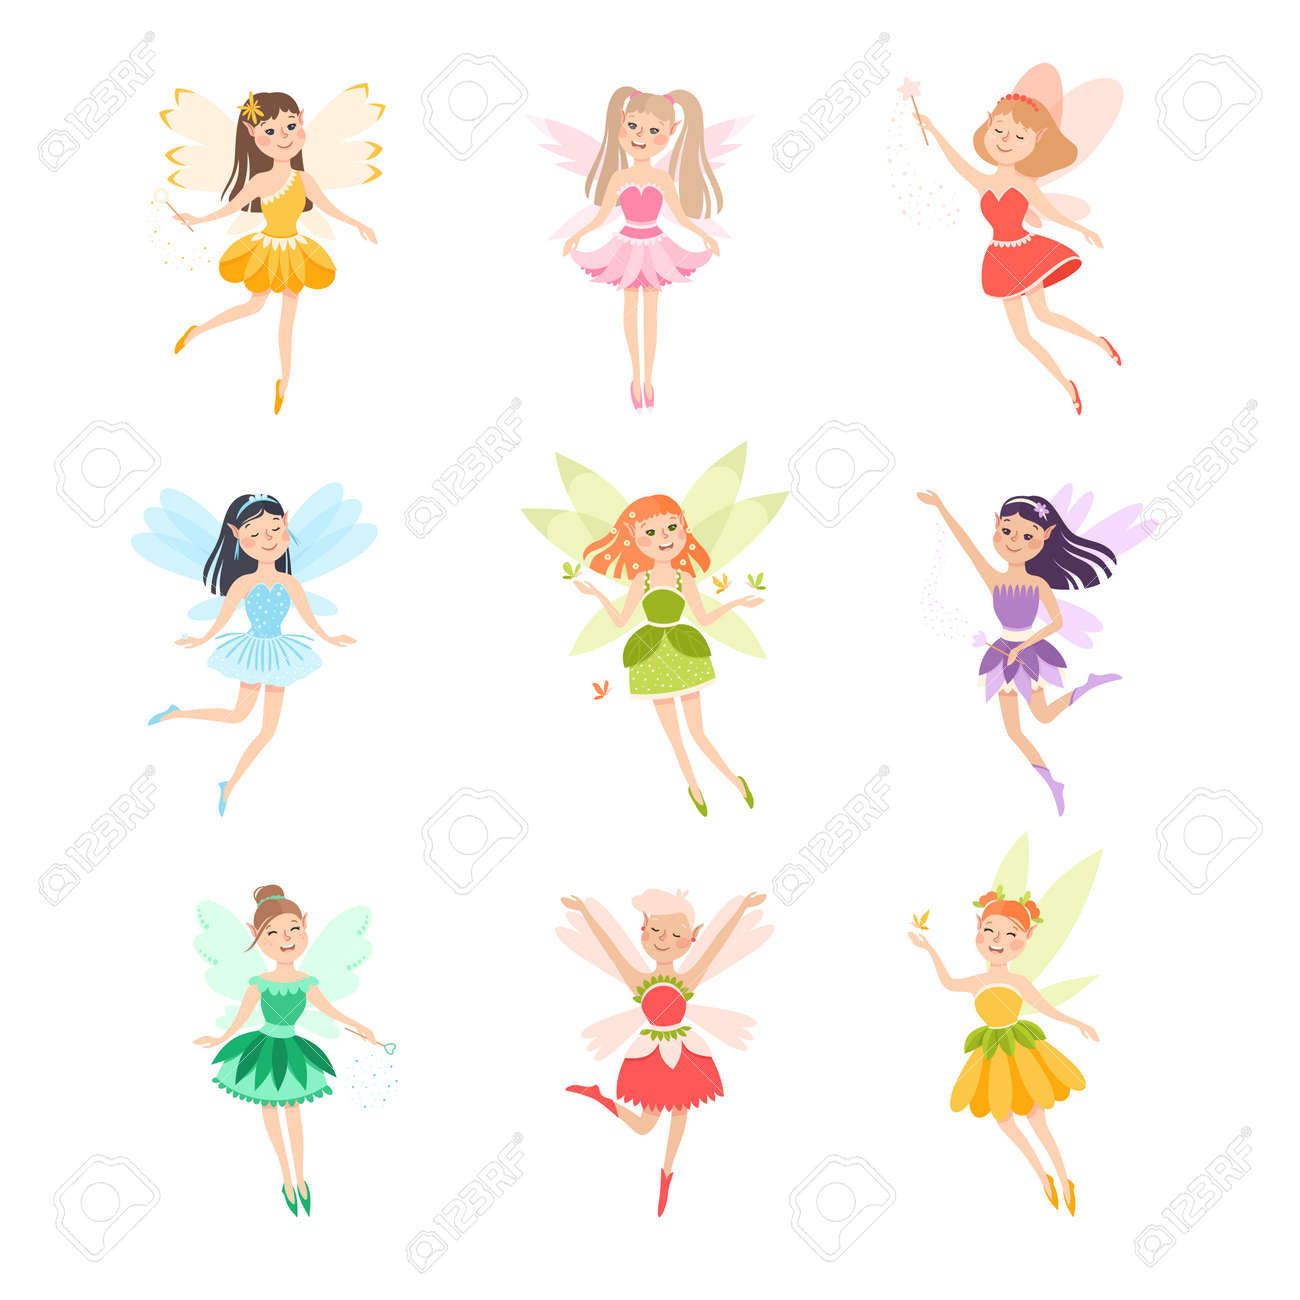 Cute Girls Fairies with Wings Set, Lovely Winged Elves Princesses in Fancy Dress Cartoon Style Vector Illustration - 158768627